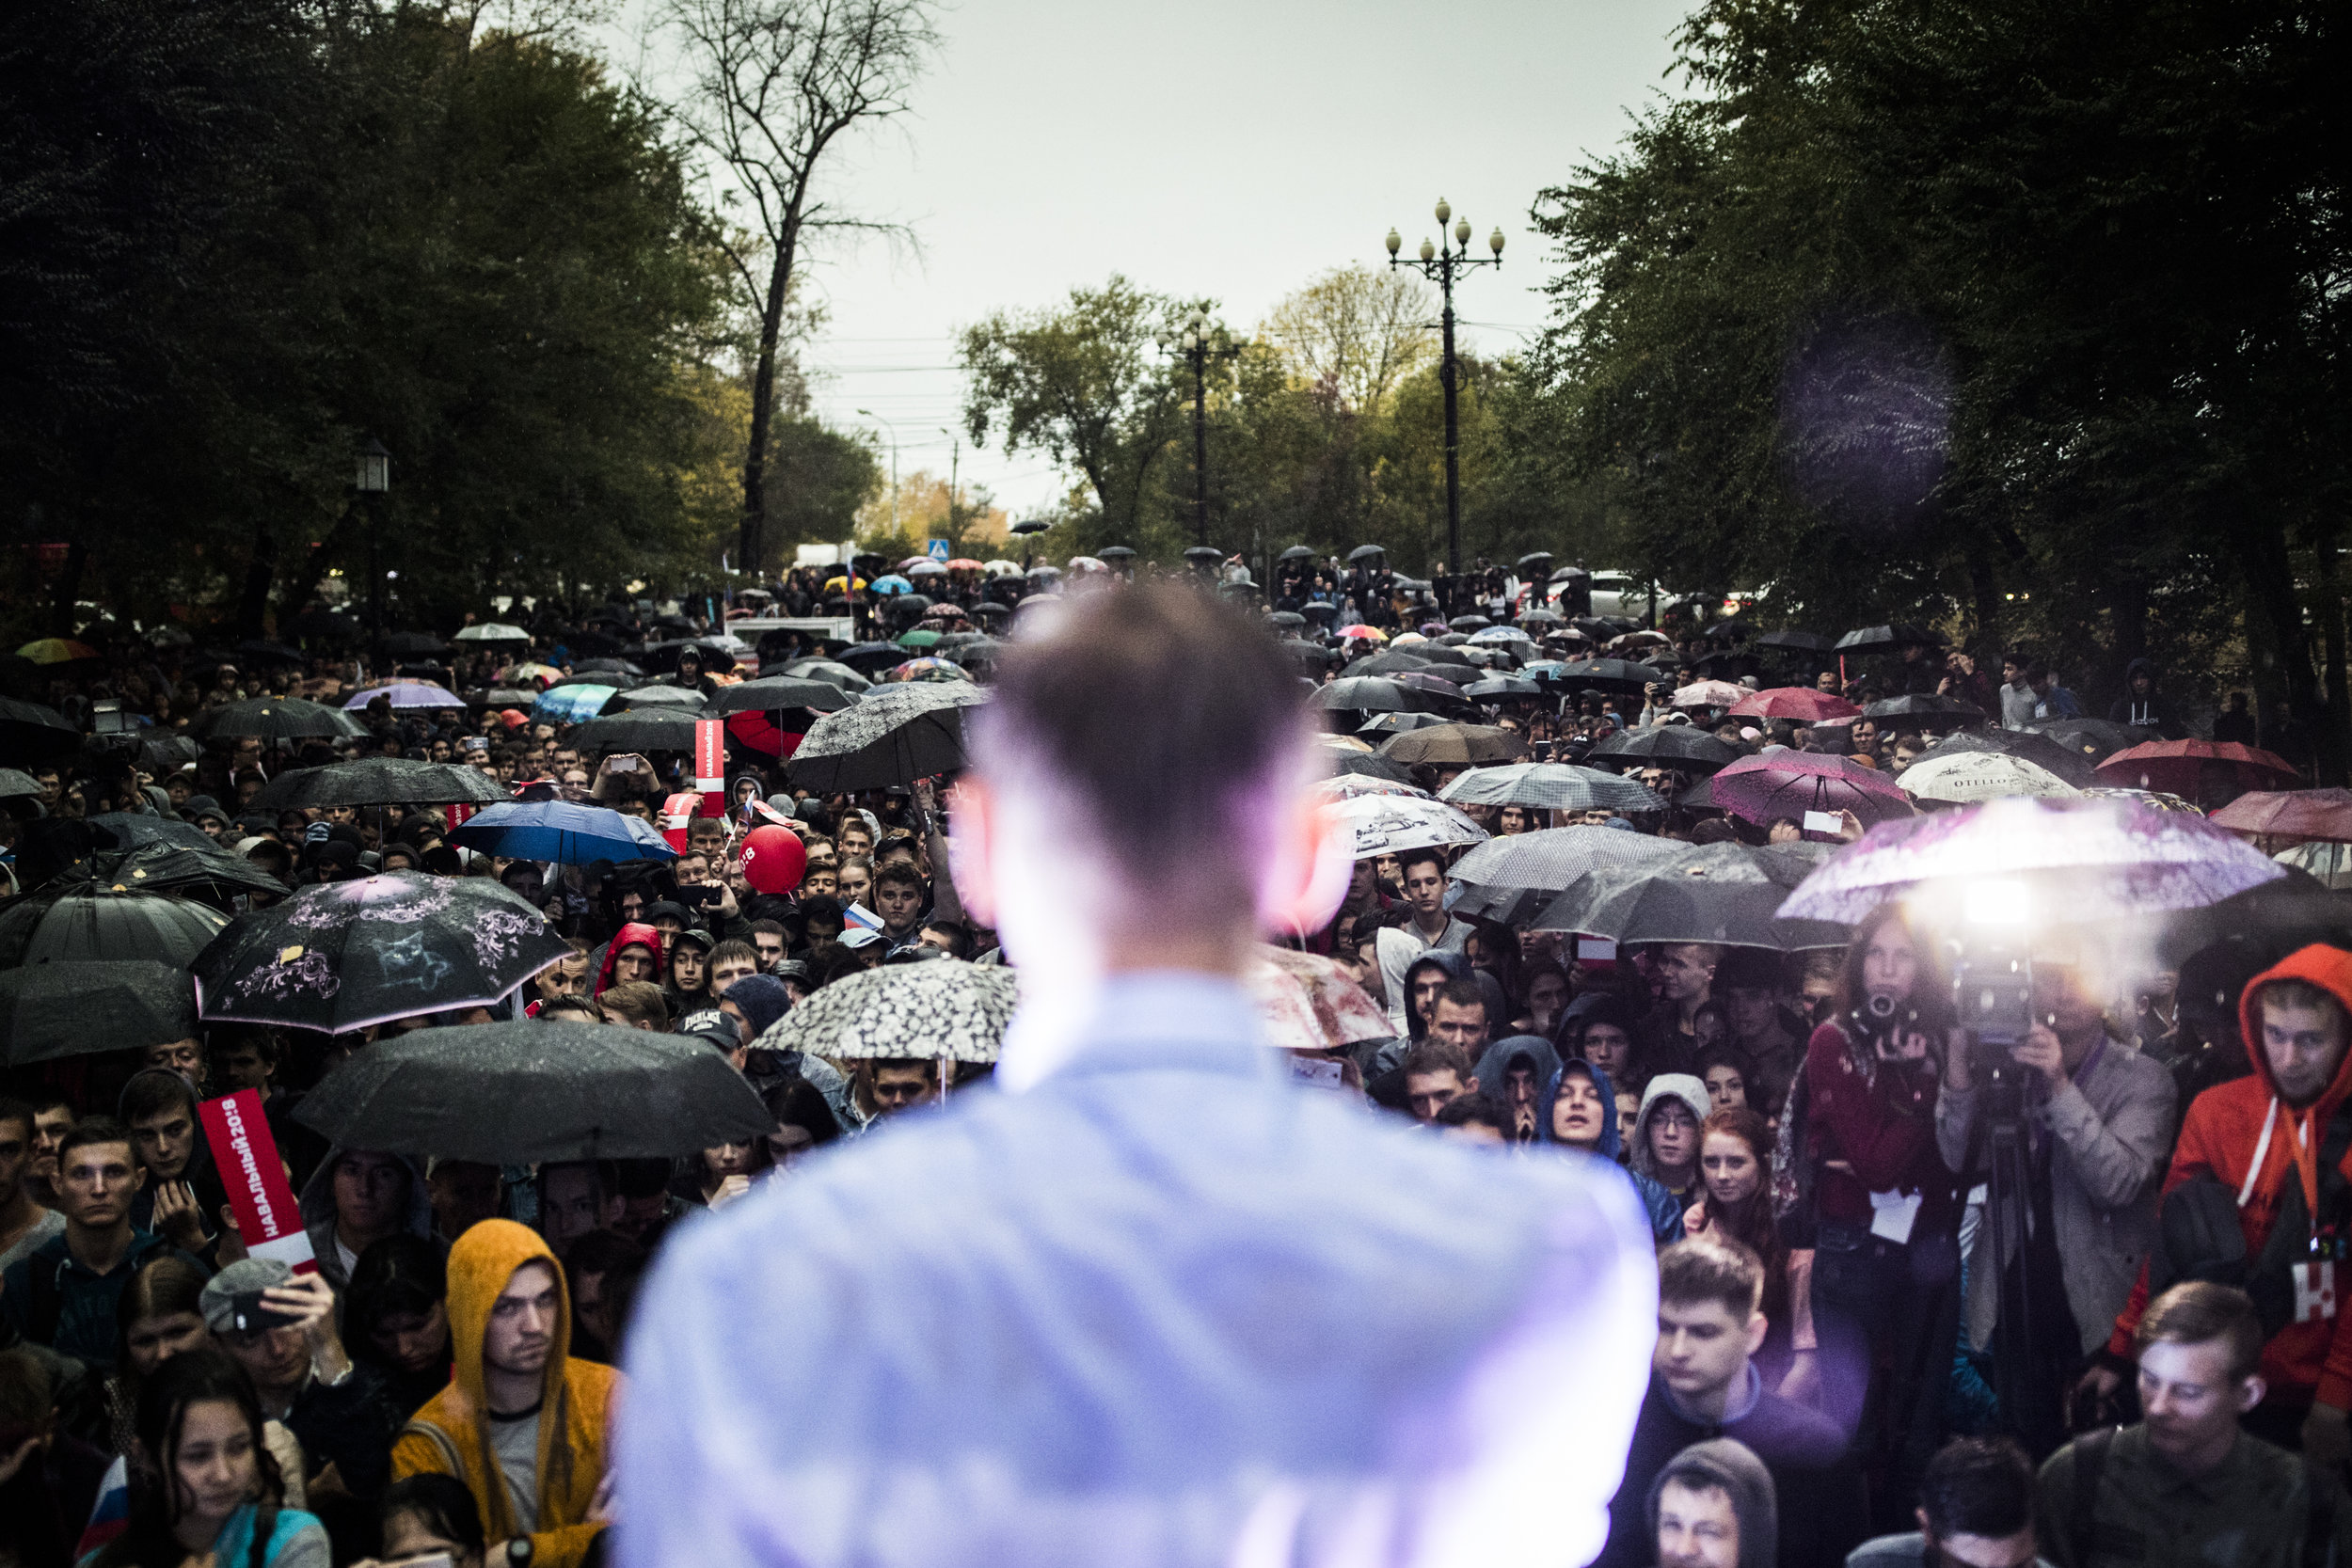 Alexey Navalny speaks at his campaign rally in Khabarovsk, a city on Russian Far East of approximately 600,000